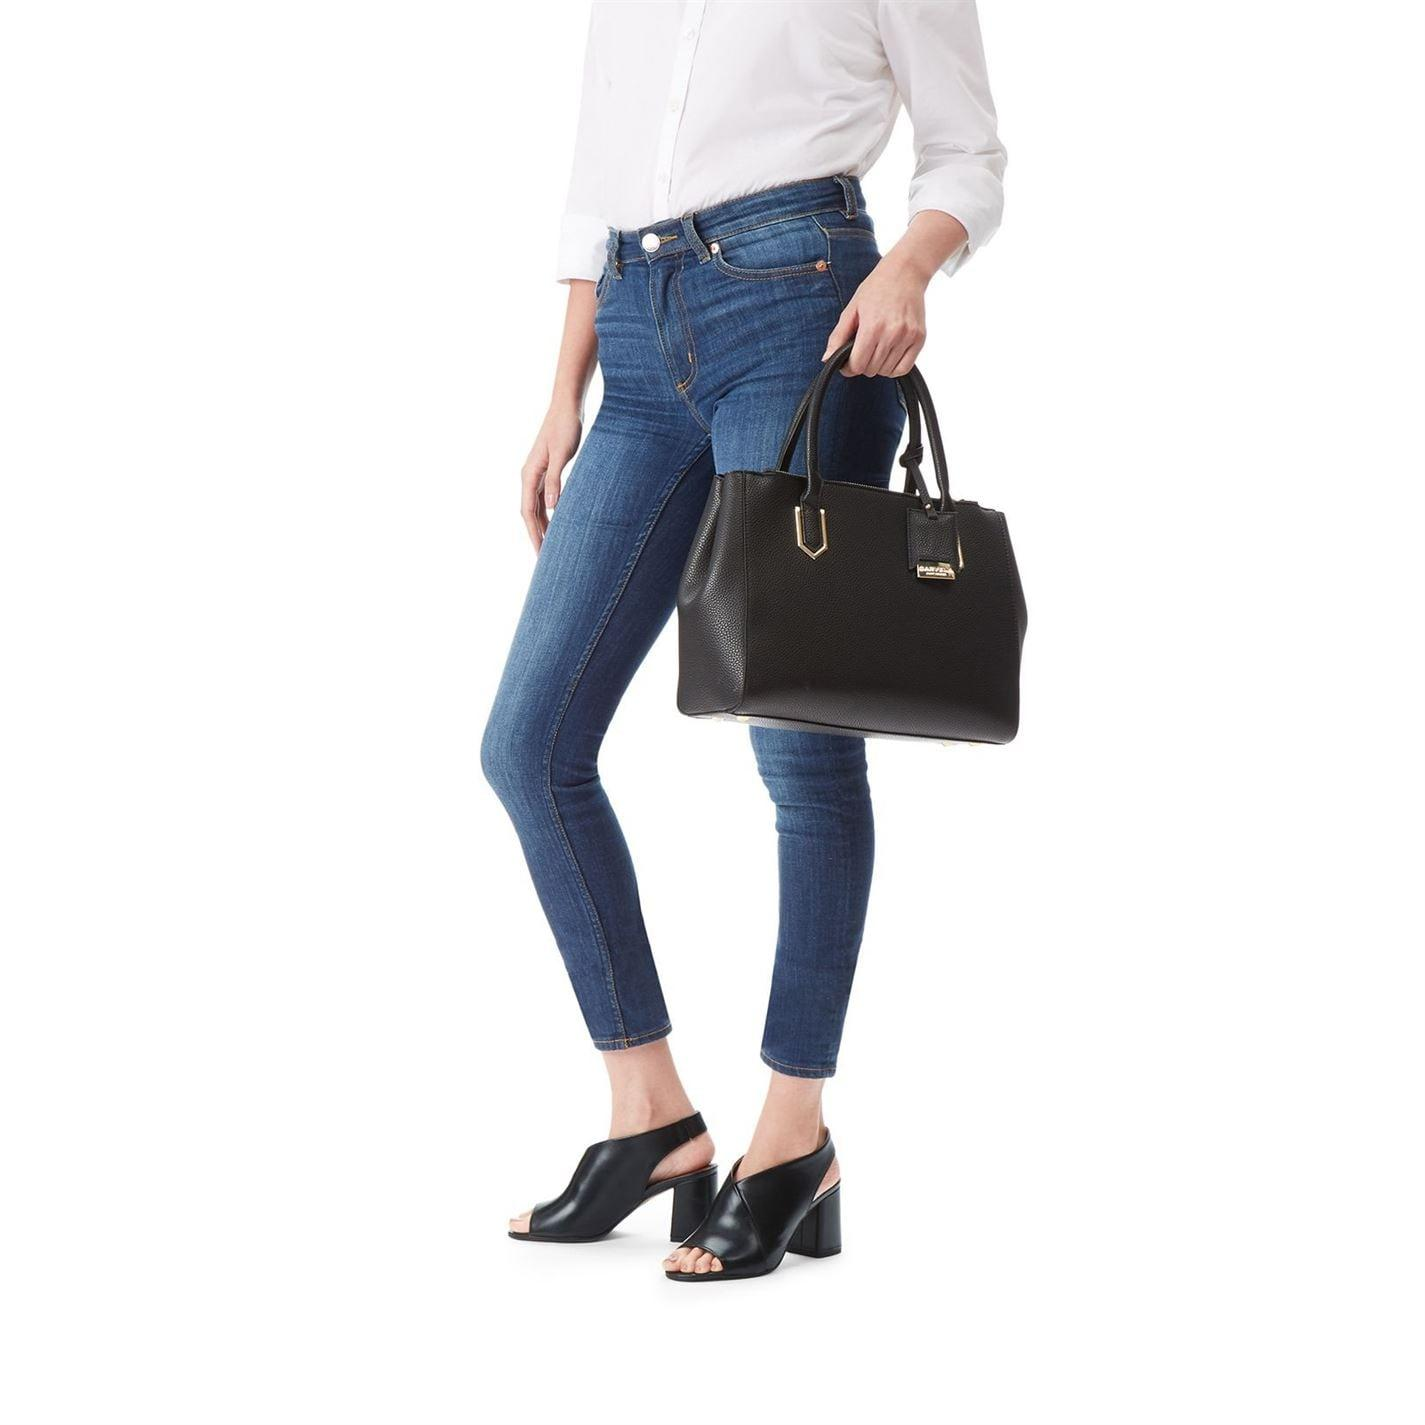 Carvela Kurt Geiger Synthetic Sunny Double Zip Tote in Black